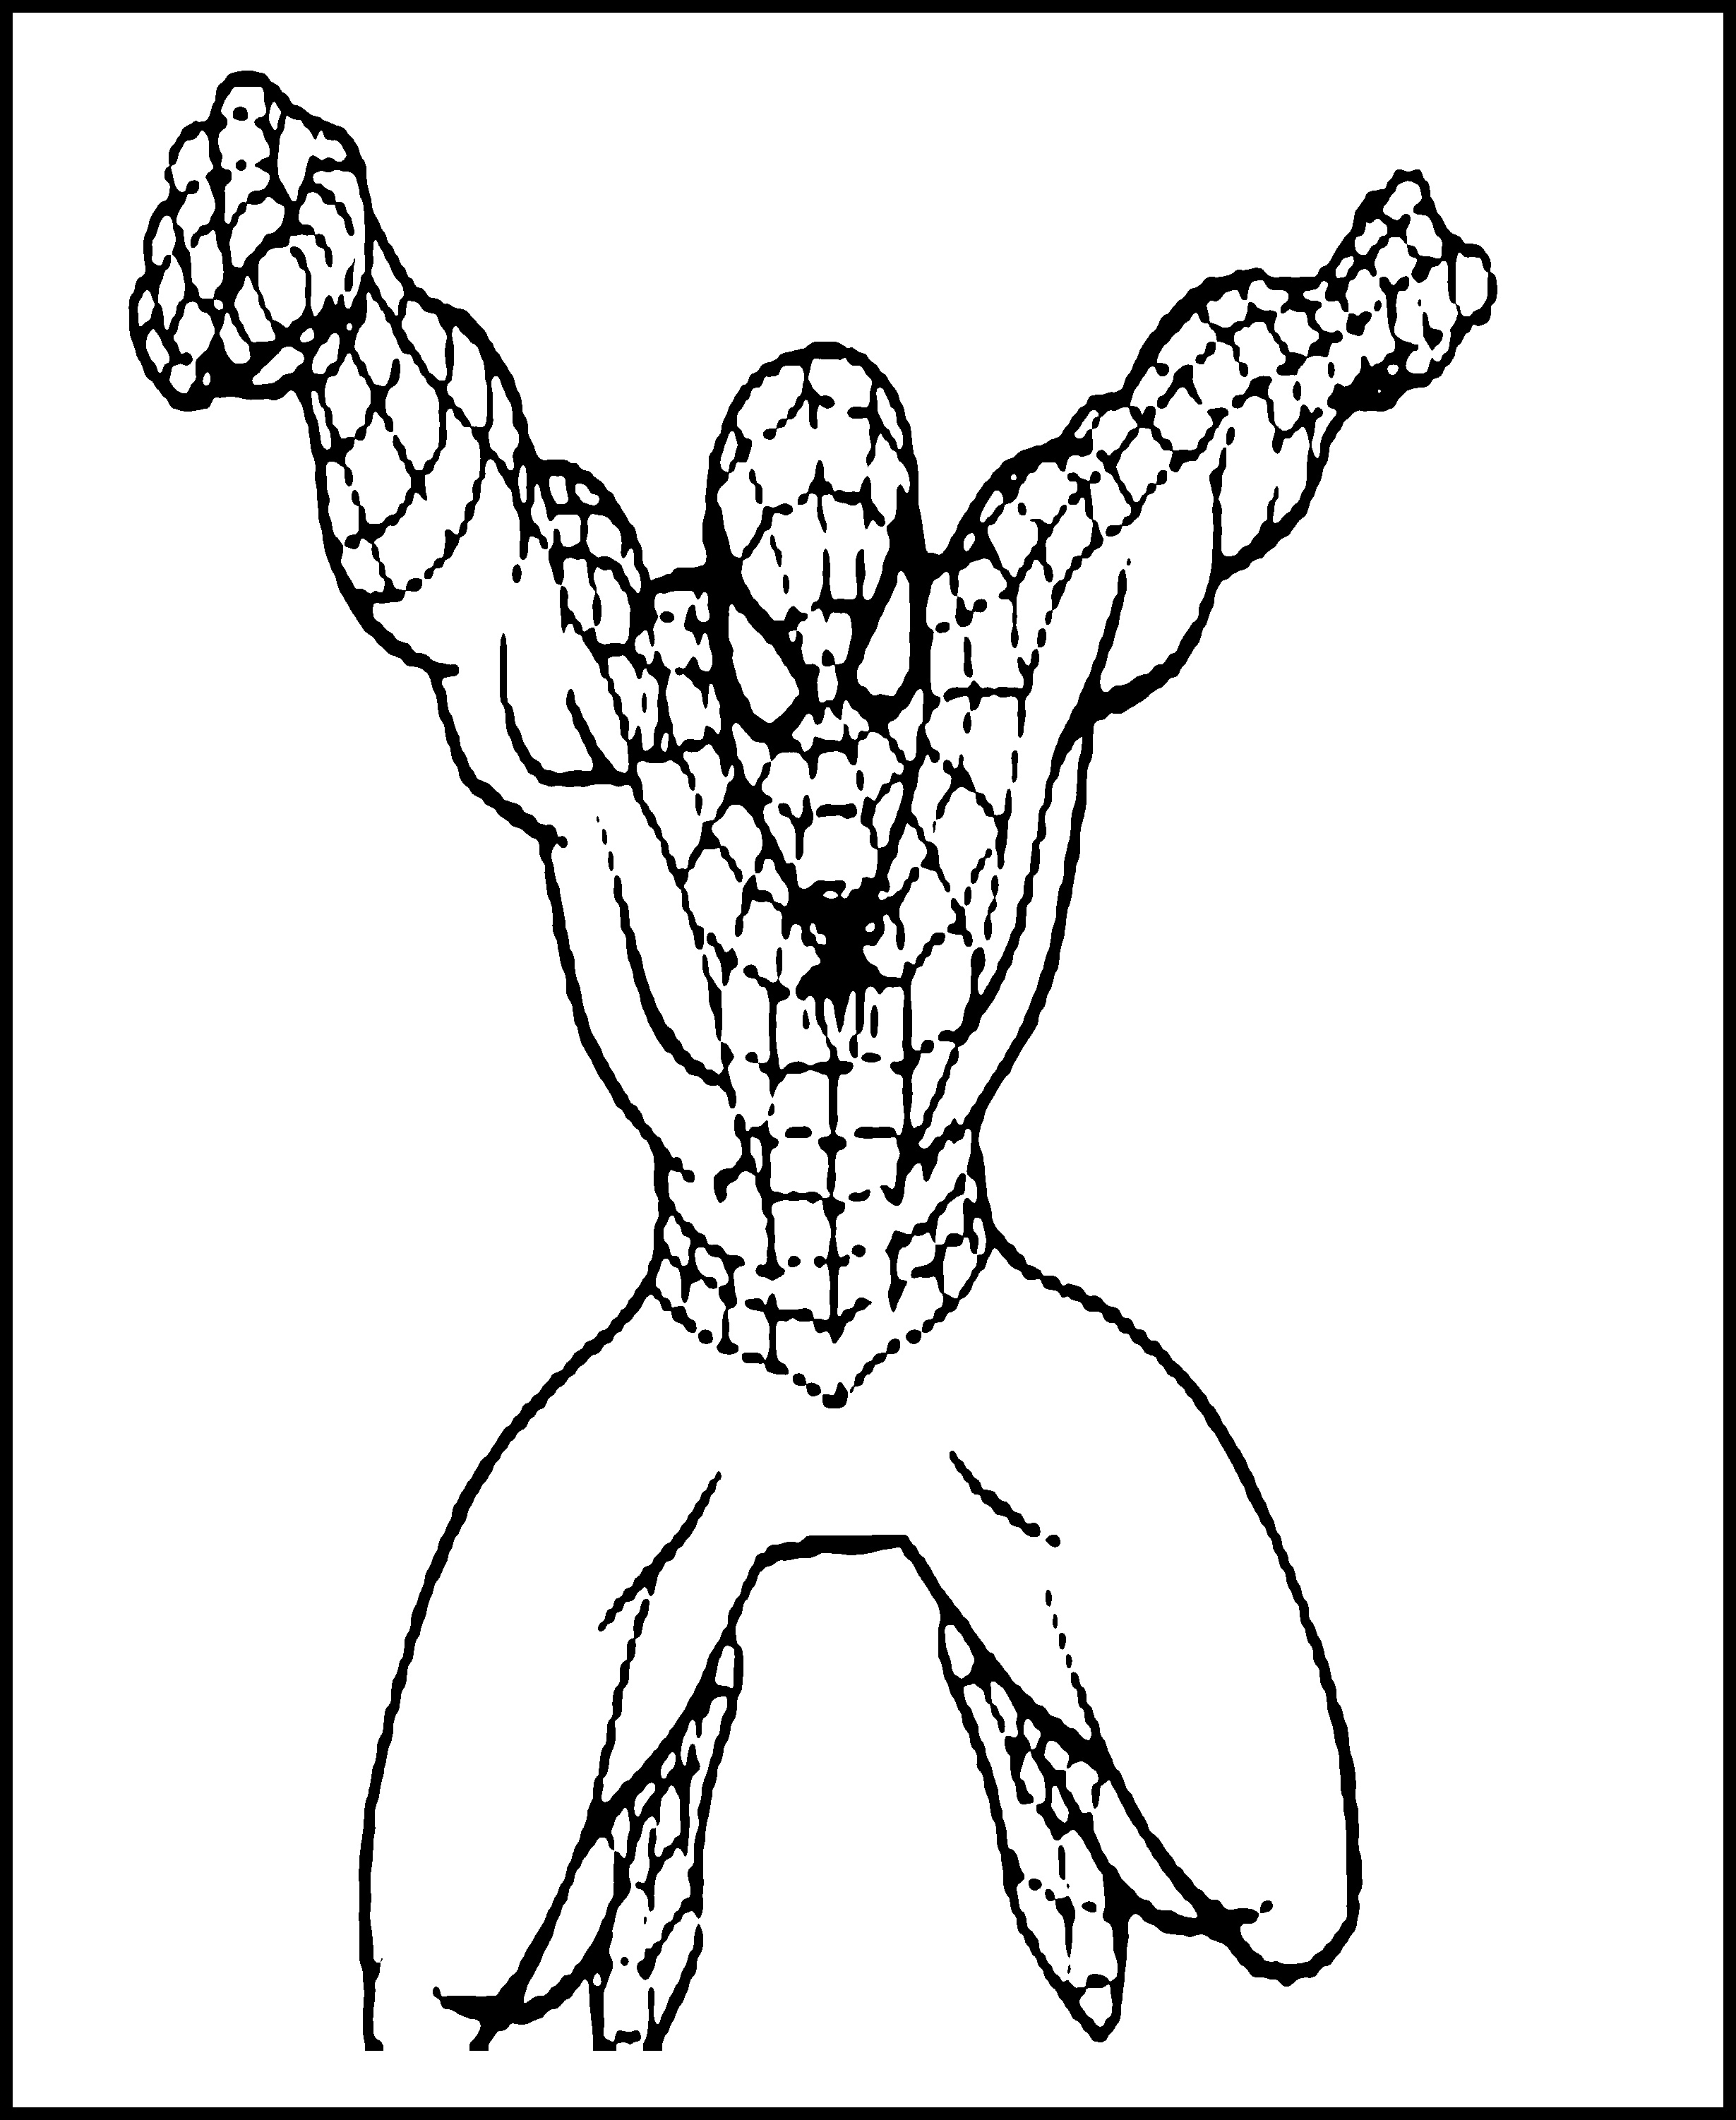 spiderman coloring pages to print out - Color In Pictures For Kids